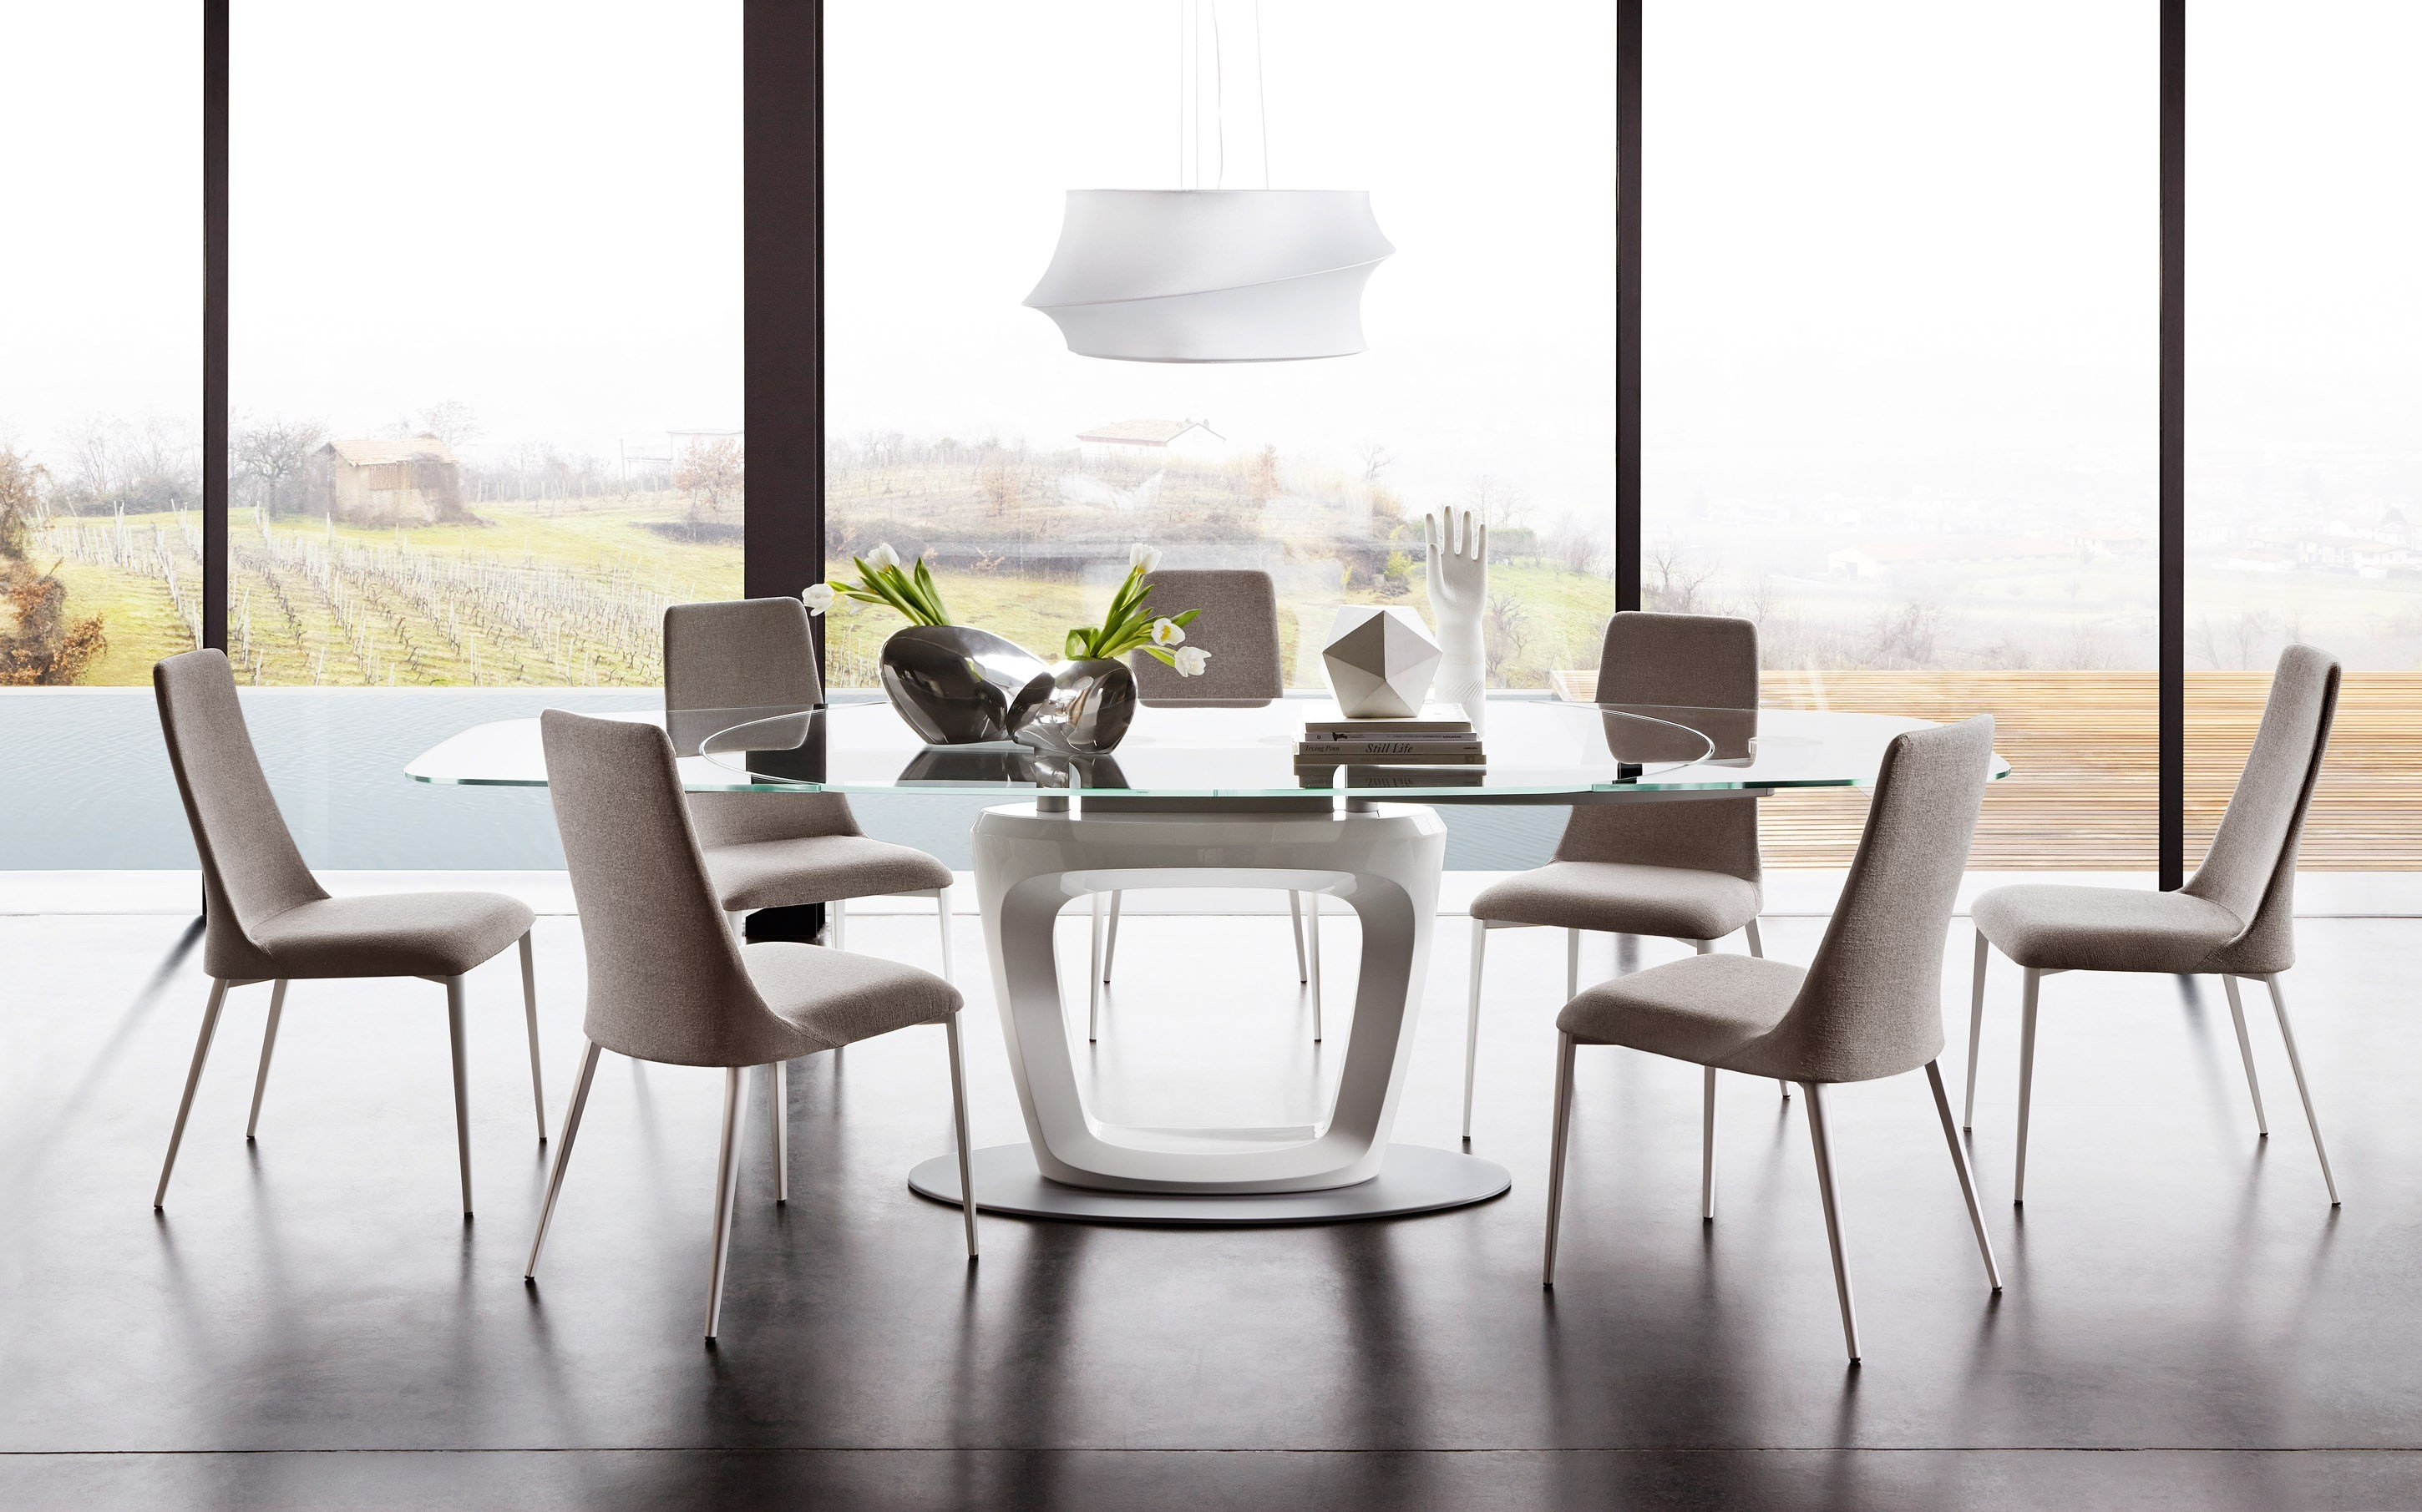 Orbital extending table by calligaris design pininfarina for Designer extending dining tables